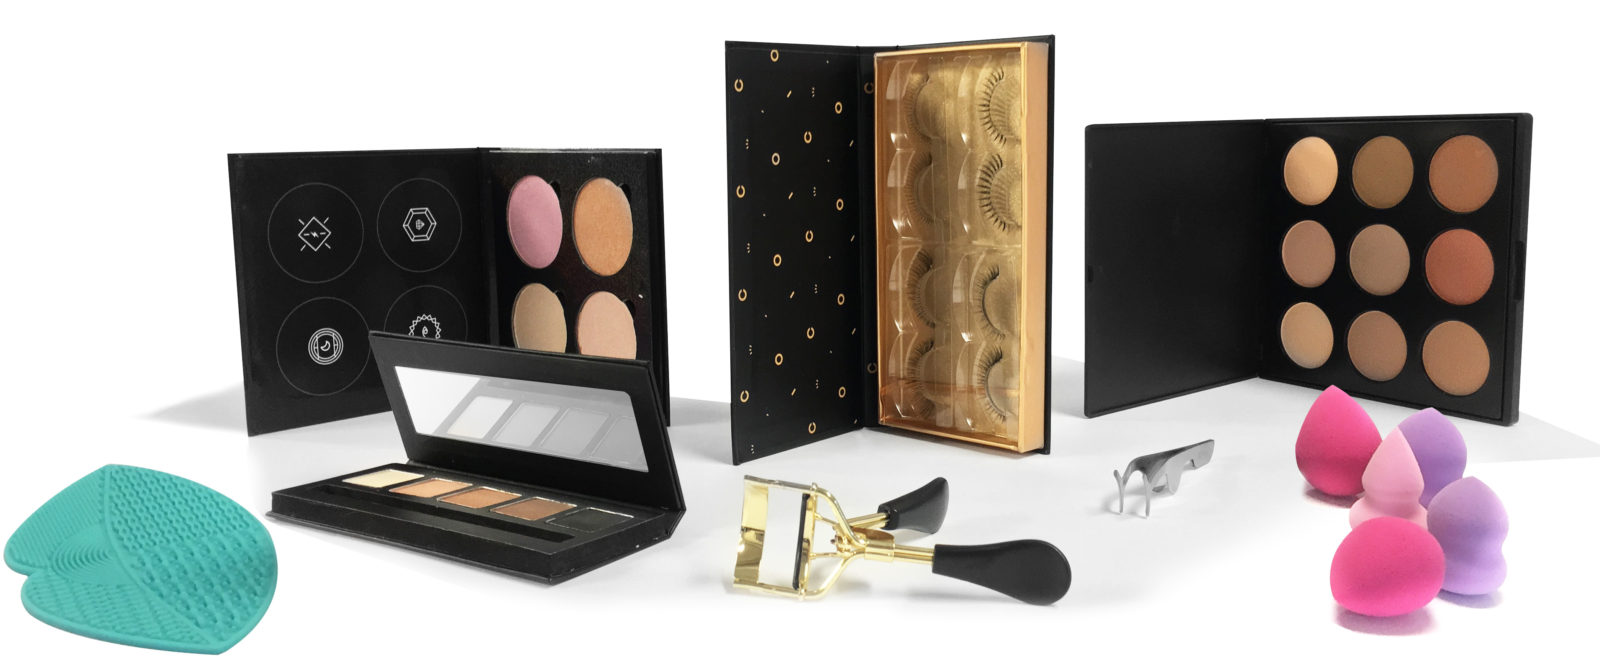 QC Makeup Academy - Free Makeup Items - QC Students and Graduates Special Offer